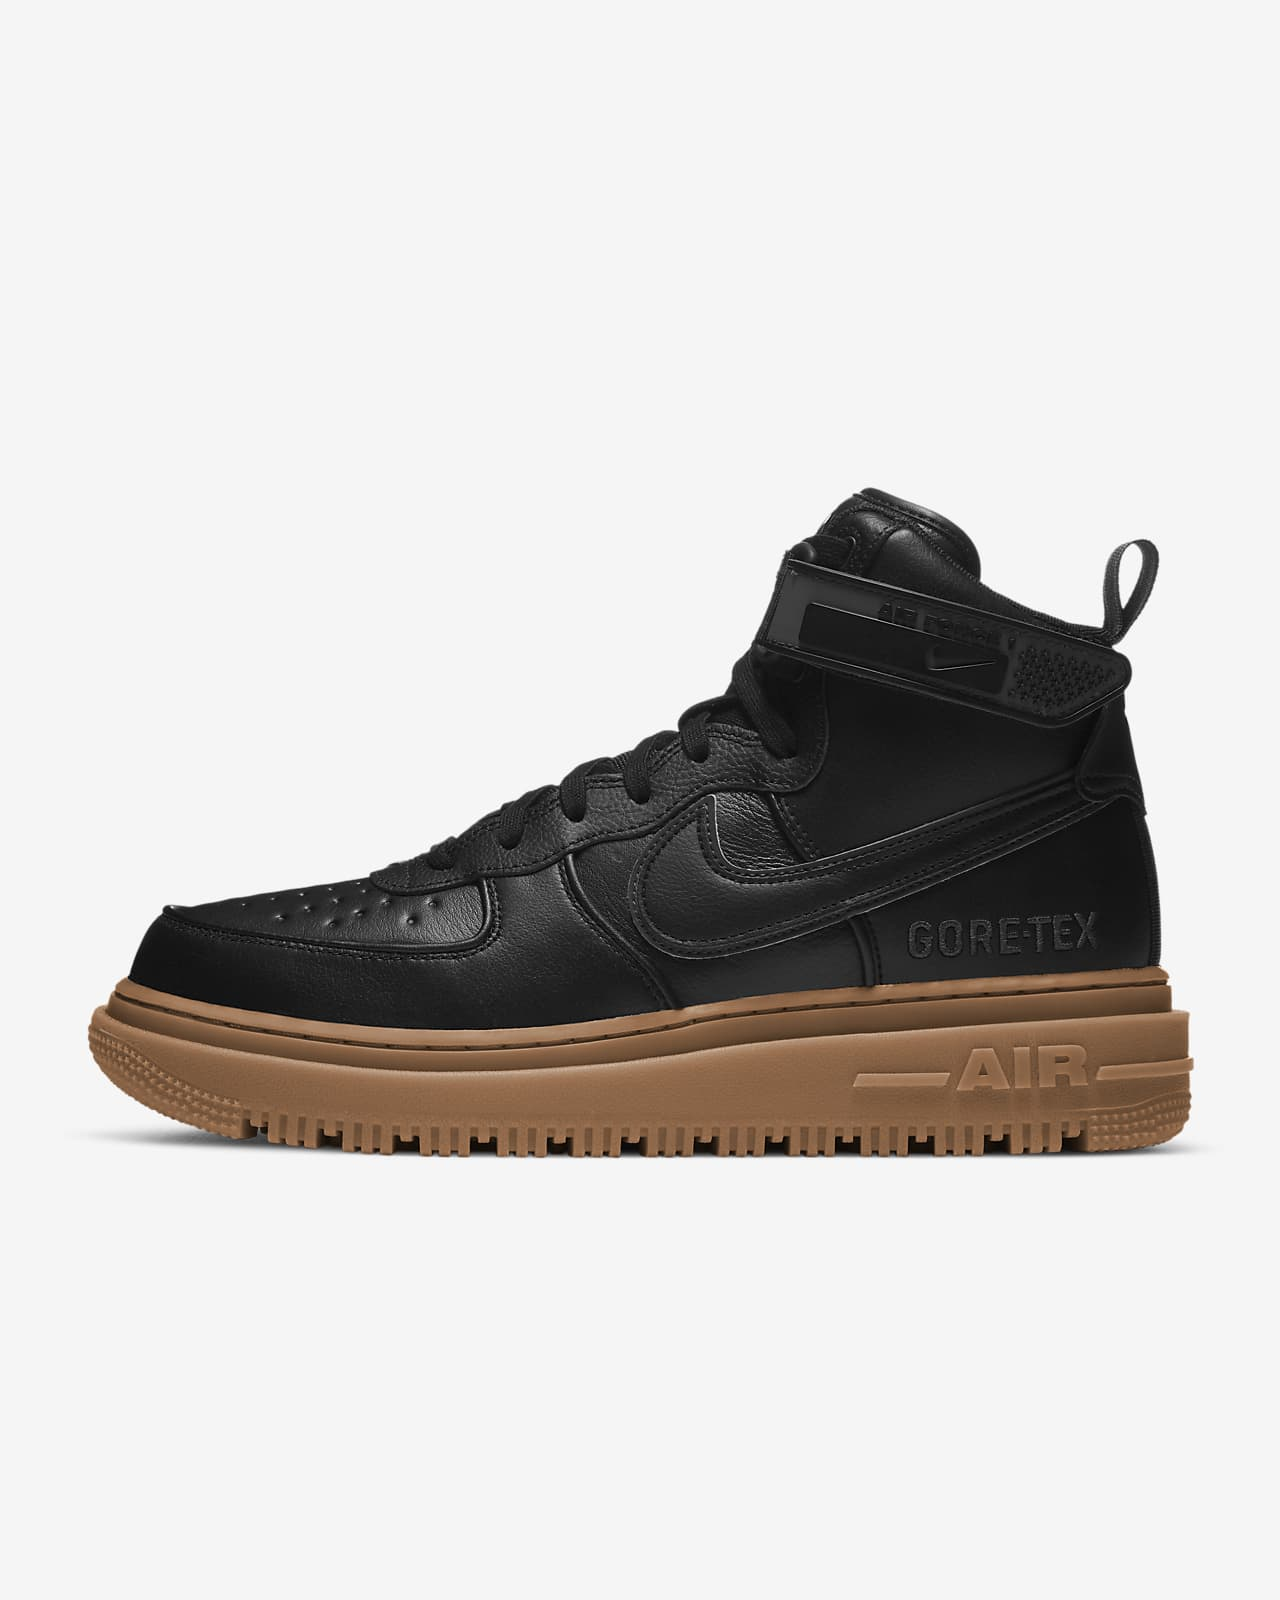 Nike Air Force 1 GTX Boot 靴款